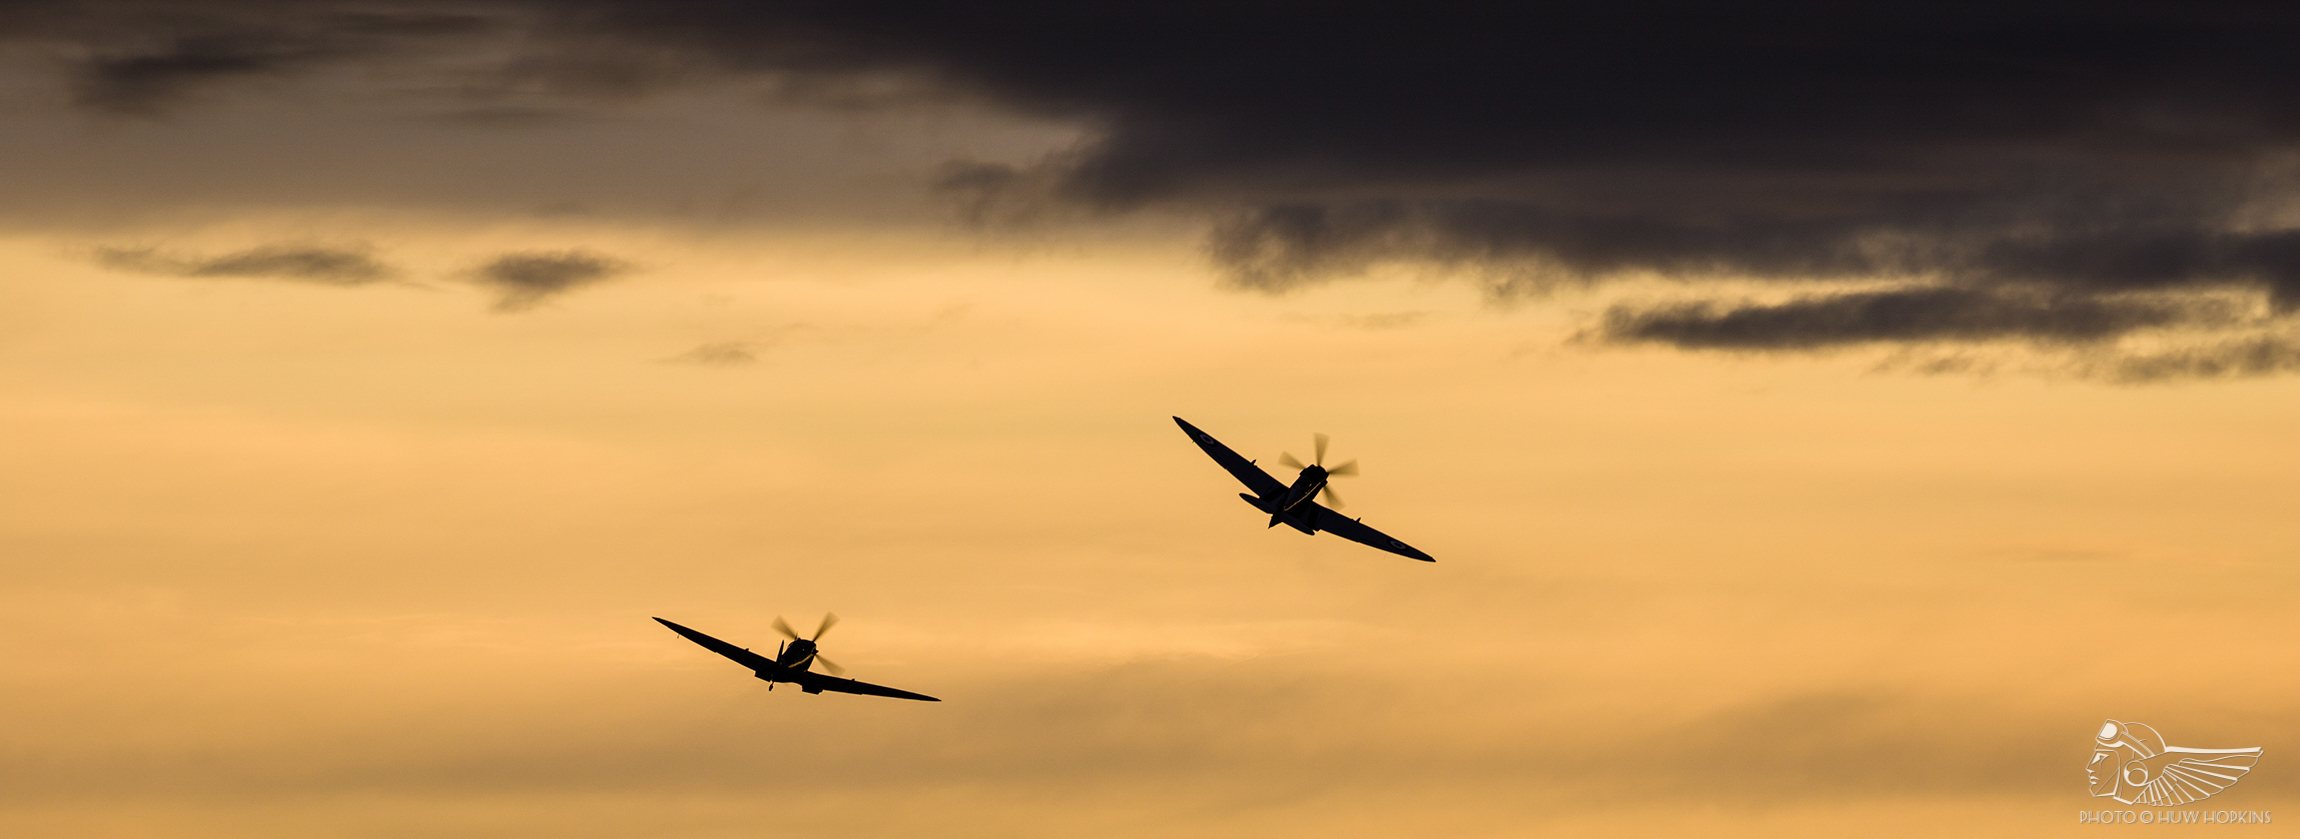 Duxford's landmark Battle of Britain Air Show